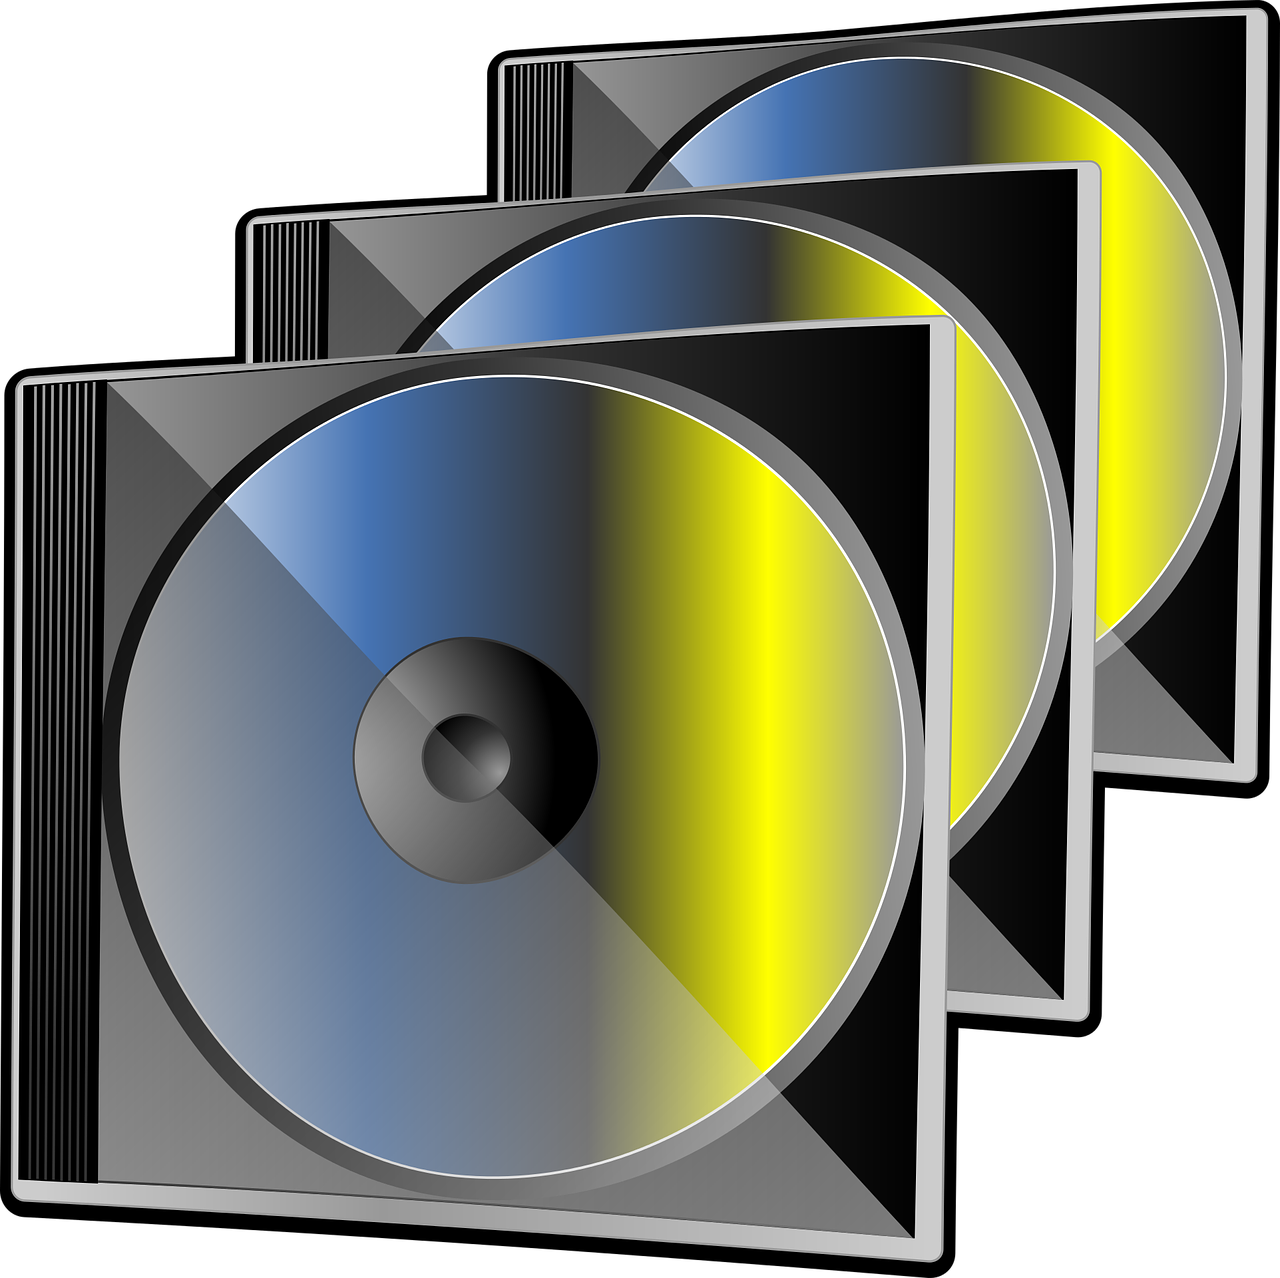 Audio cd clipart vector royalty free download Audio Cd Compact Disc Data Dvd PNG - Picpng vector royalty free download